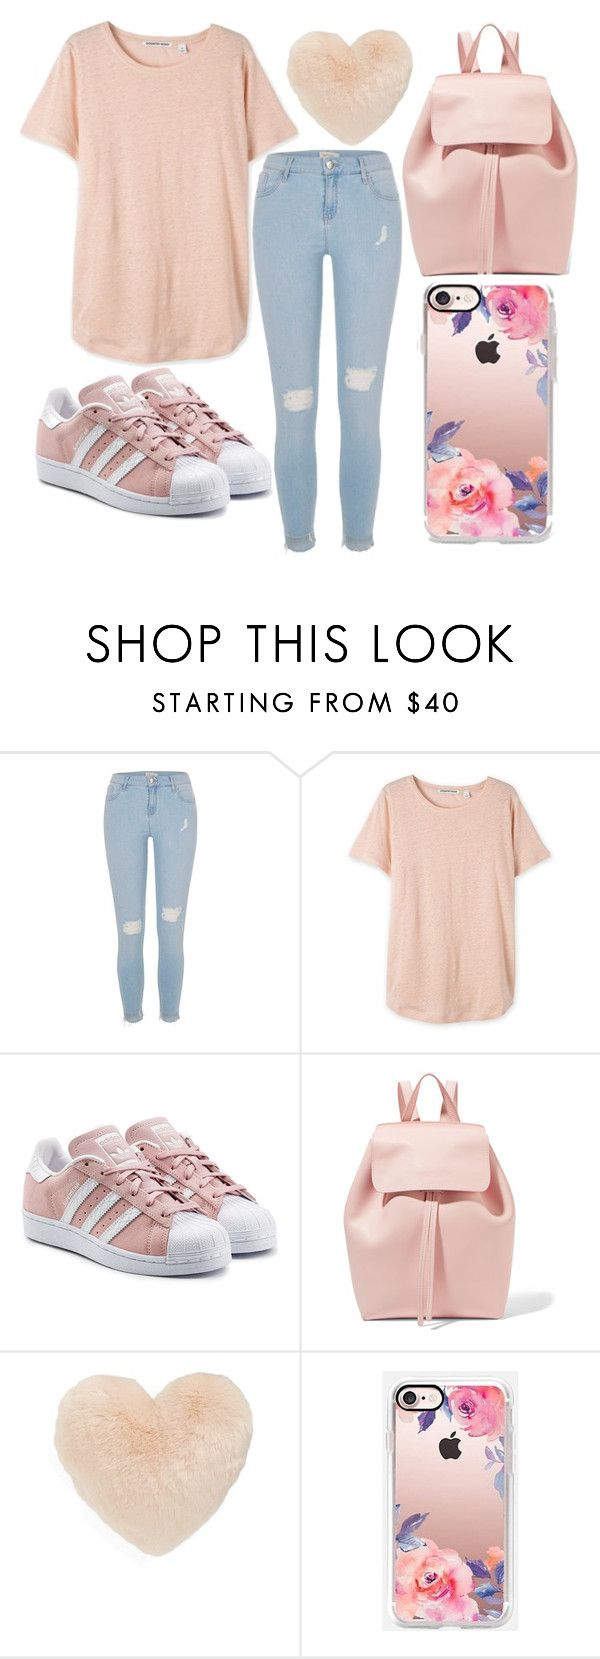 """""""Pink"""" by kaitlyn-ashby101 ❤ liked on Polyvore featuring River Island, adidas Originals, Mansur Gavriel, Nordstrom and Casetify"""